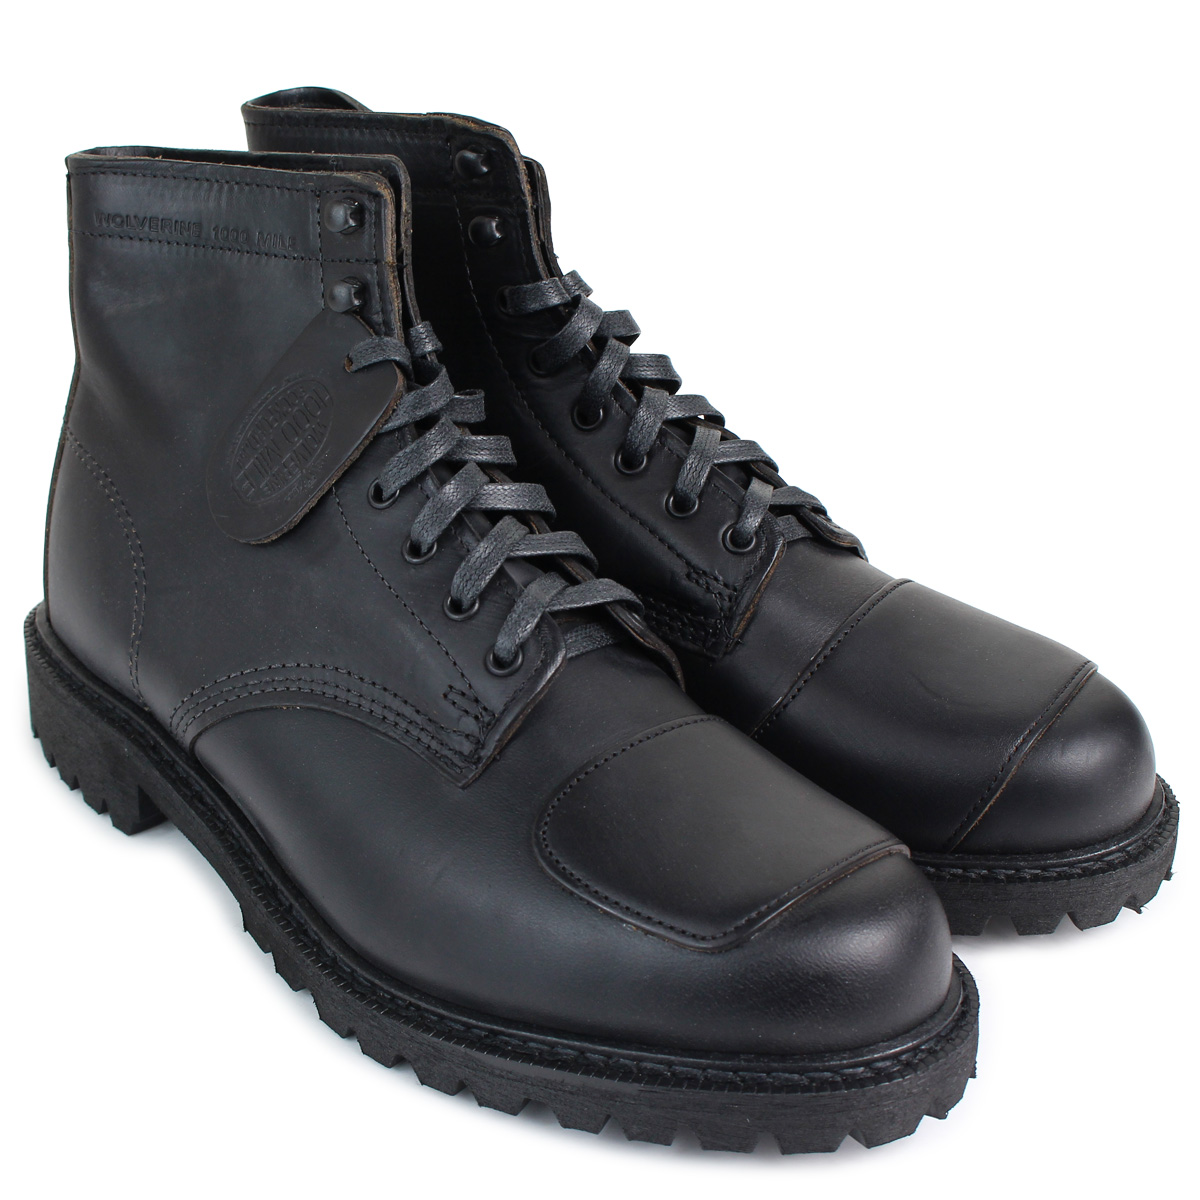 7f5a6018cd1 WOLVERINE 1000 MILE DYLAN MONO BOOT Wolverene 1,000 miles boots men D Wise  W40300 blackwork boots